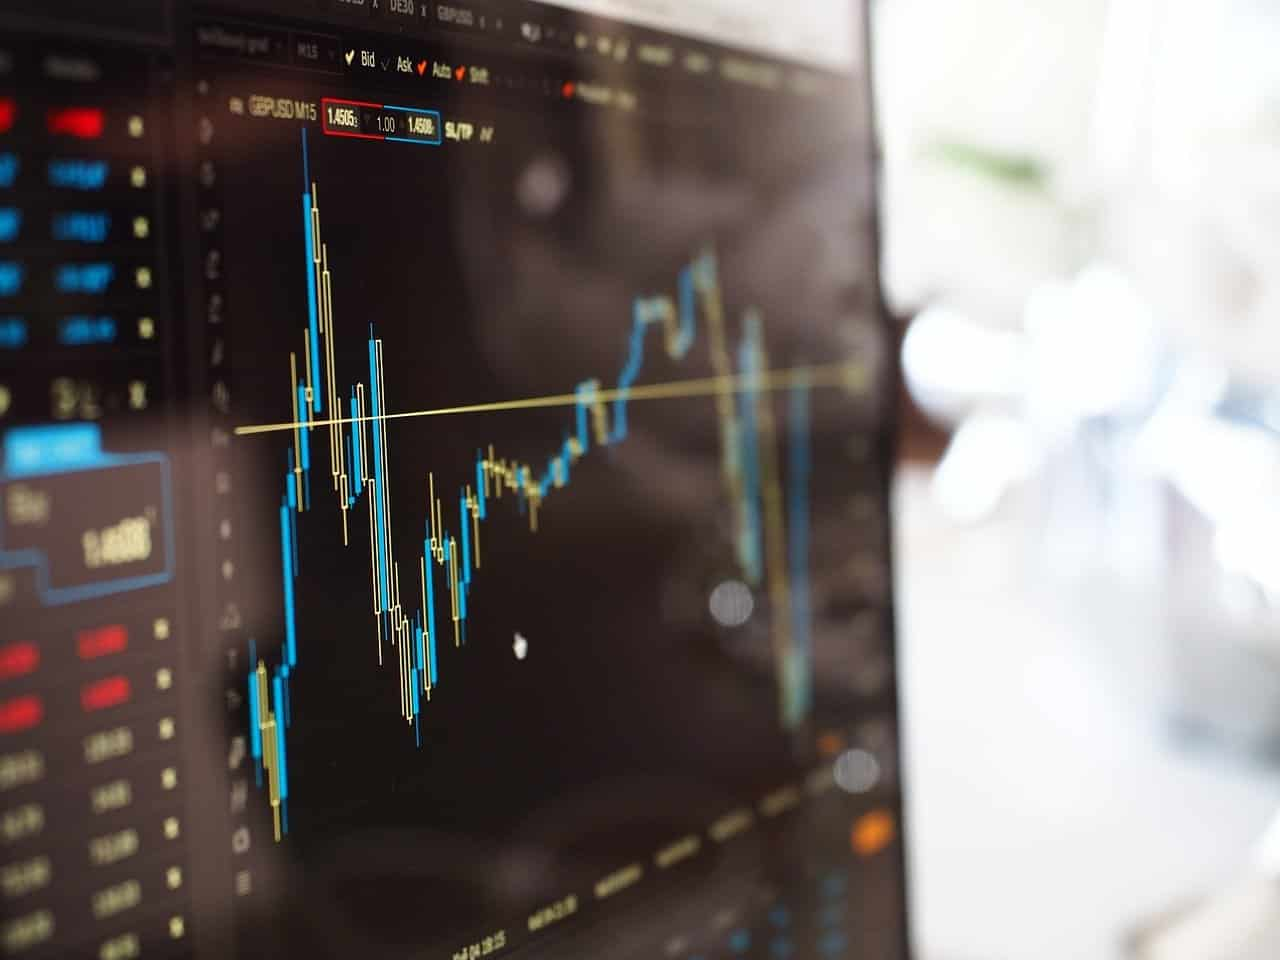 Web Scraping and Stock Trading